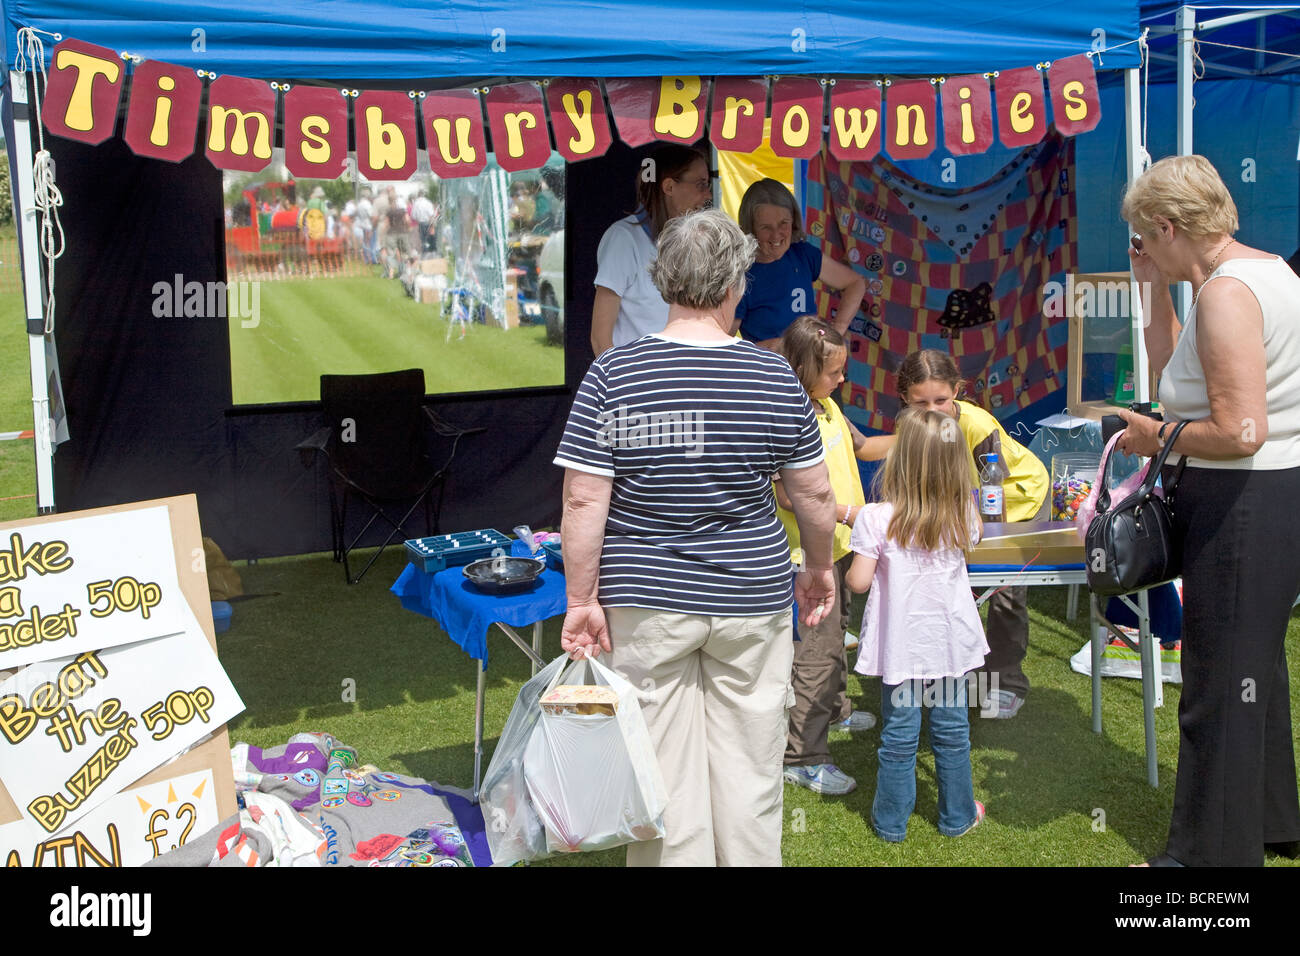 Timsbury Brownies stall at fete - Stock Image